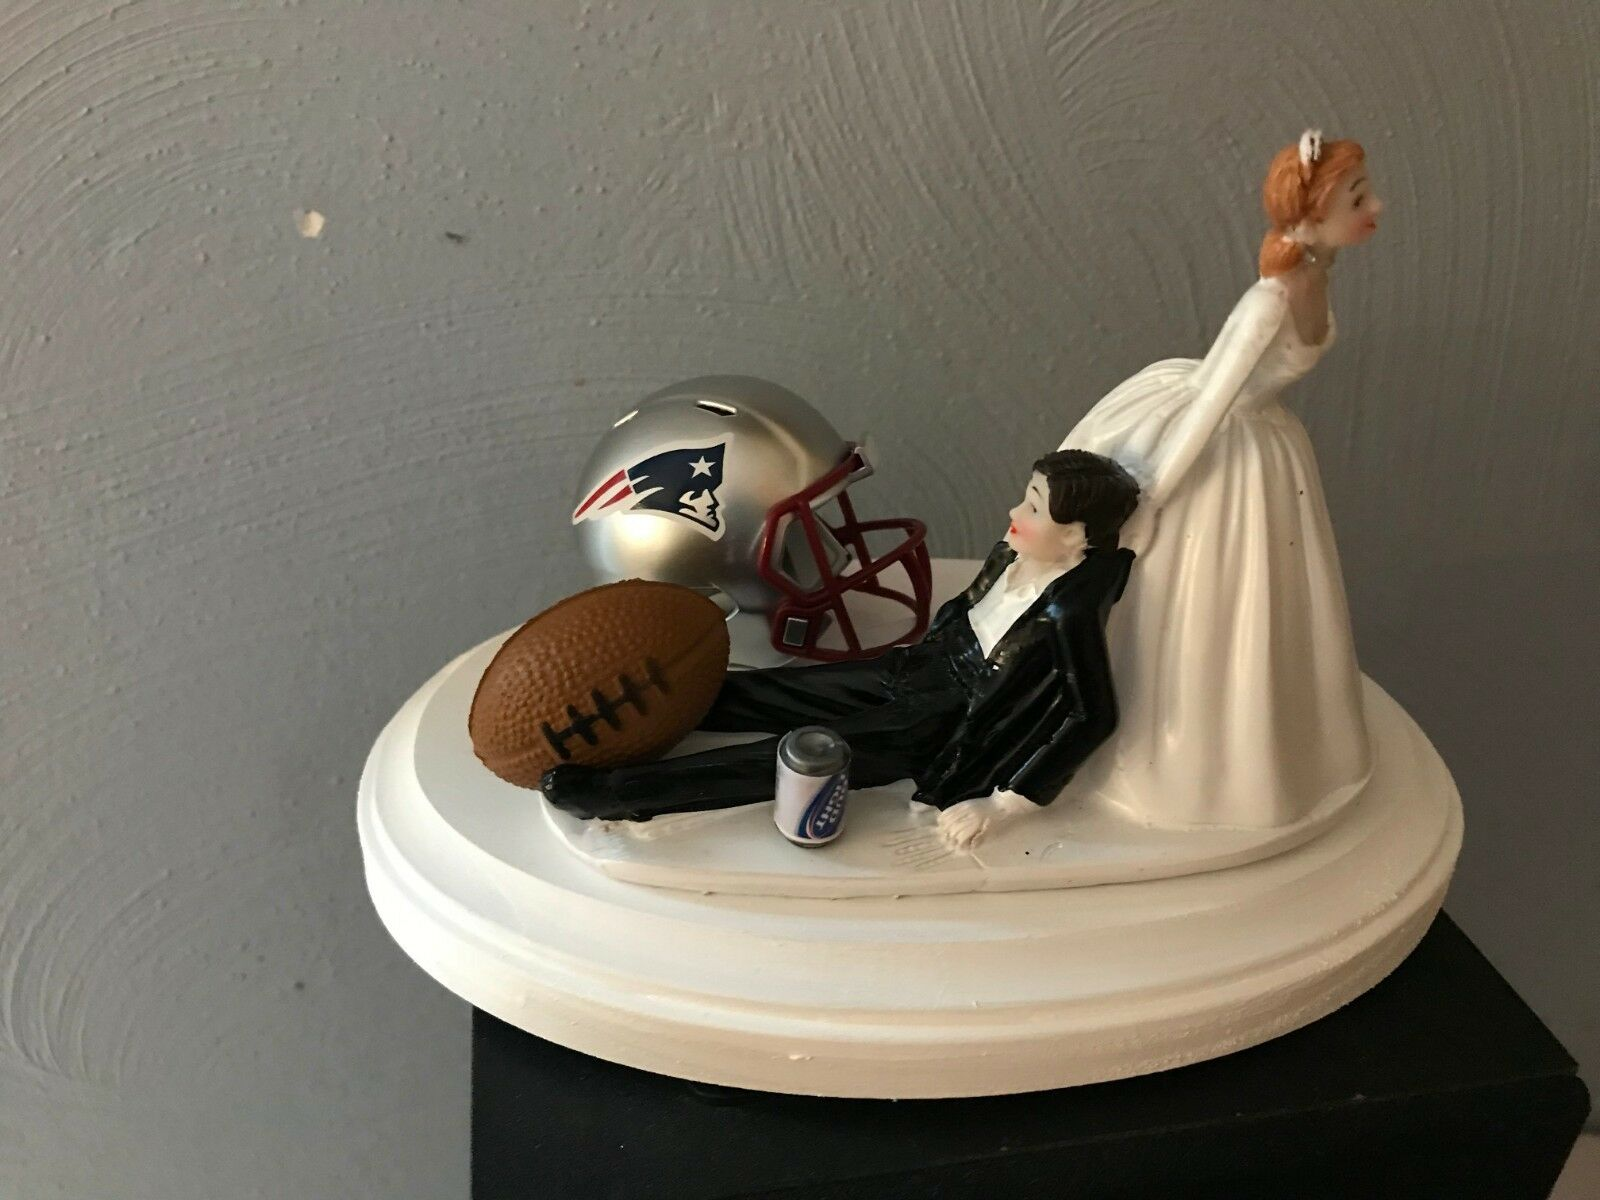 New England Patriots Cake Topper Bride Groom Groom Groom Wedding Funny Football Theme 9c9a91